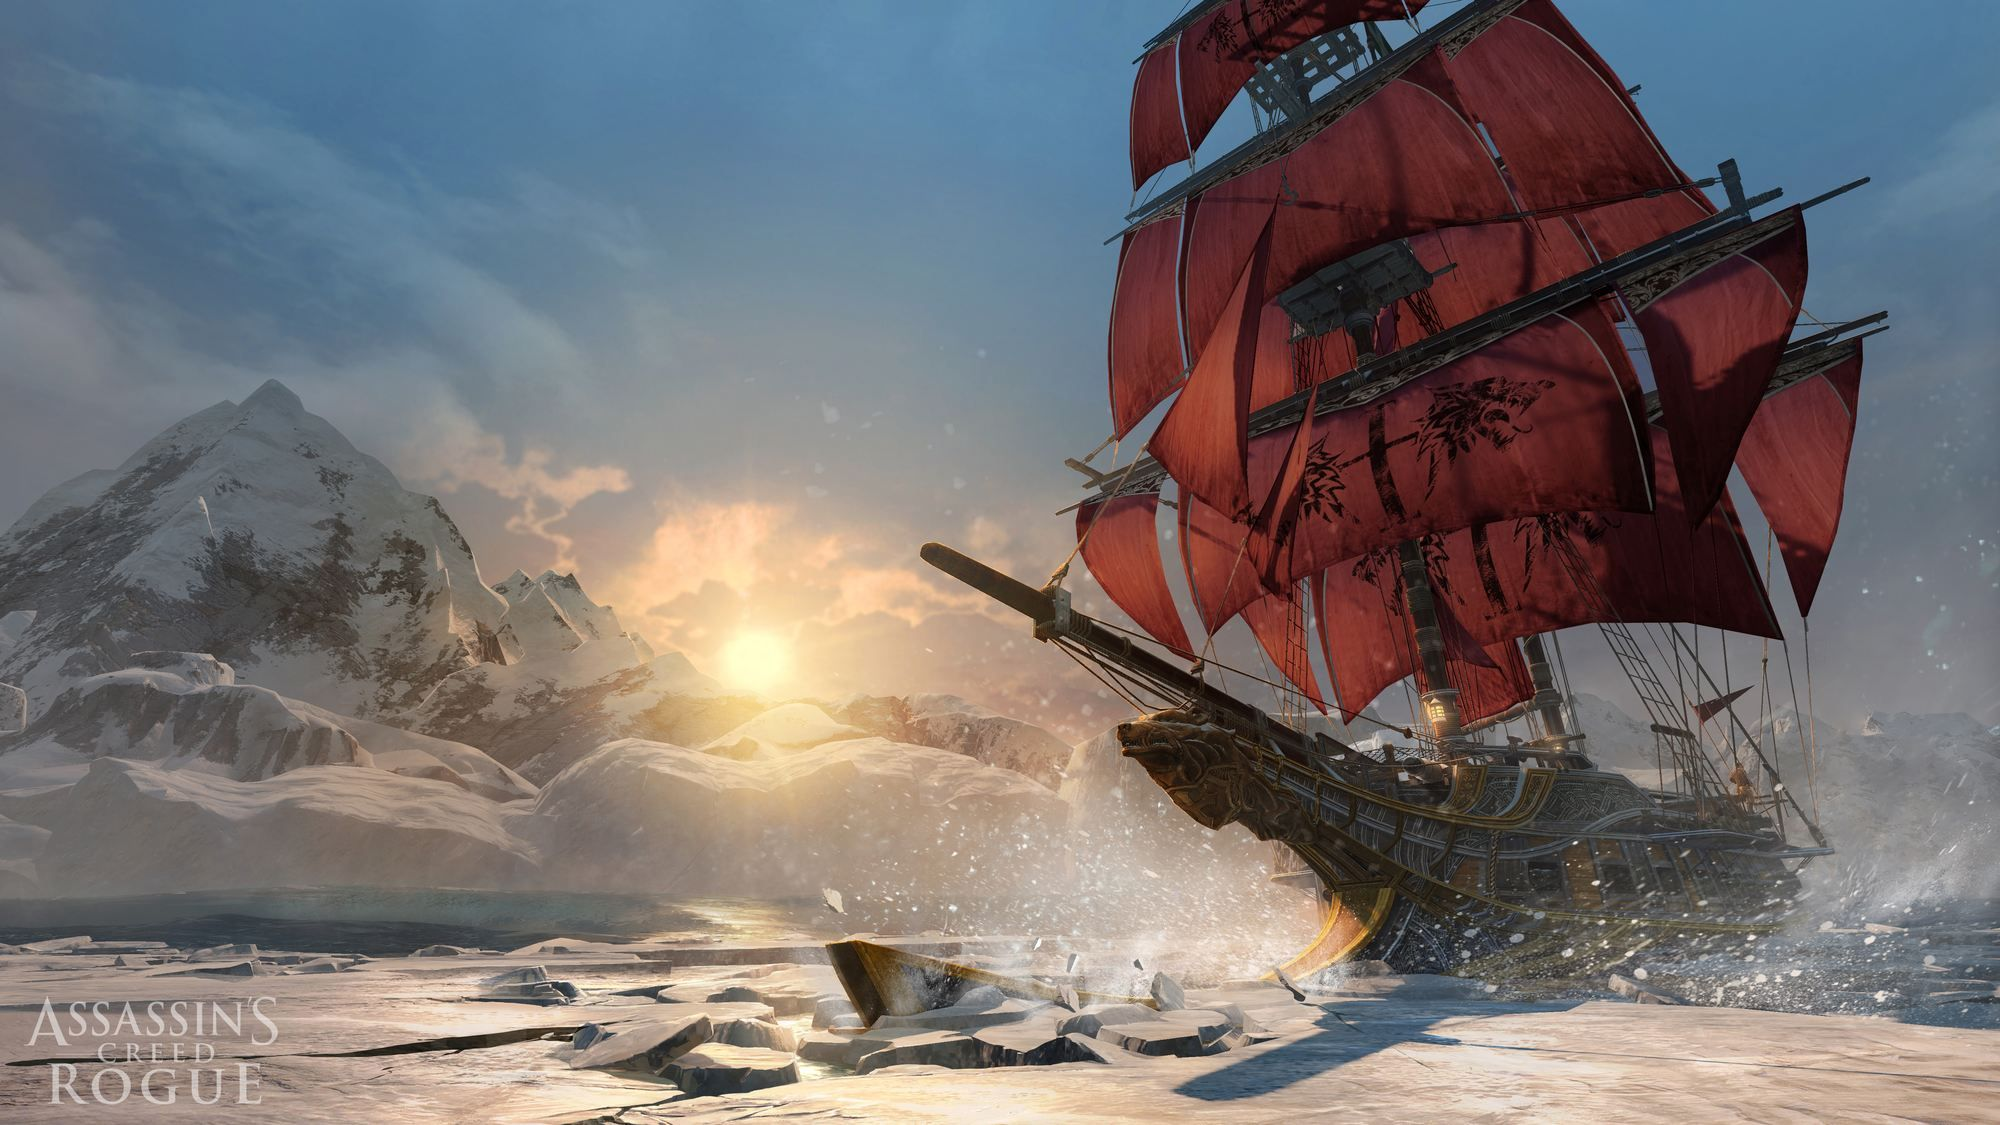 Assassin's Creed Rogue Remastered (Xbox One) - 4